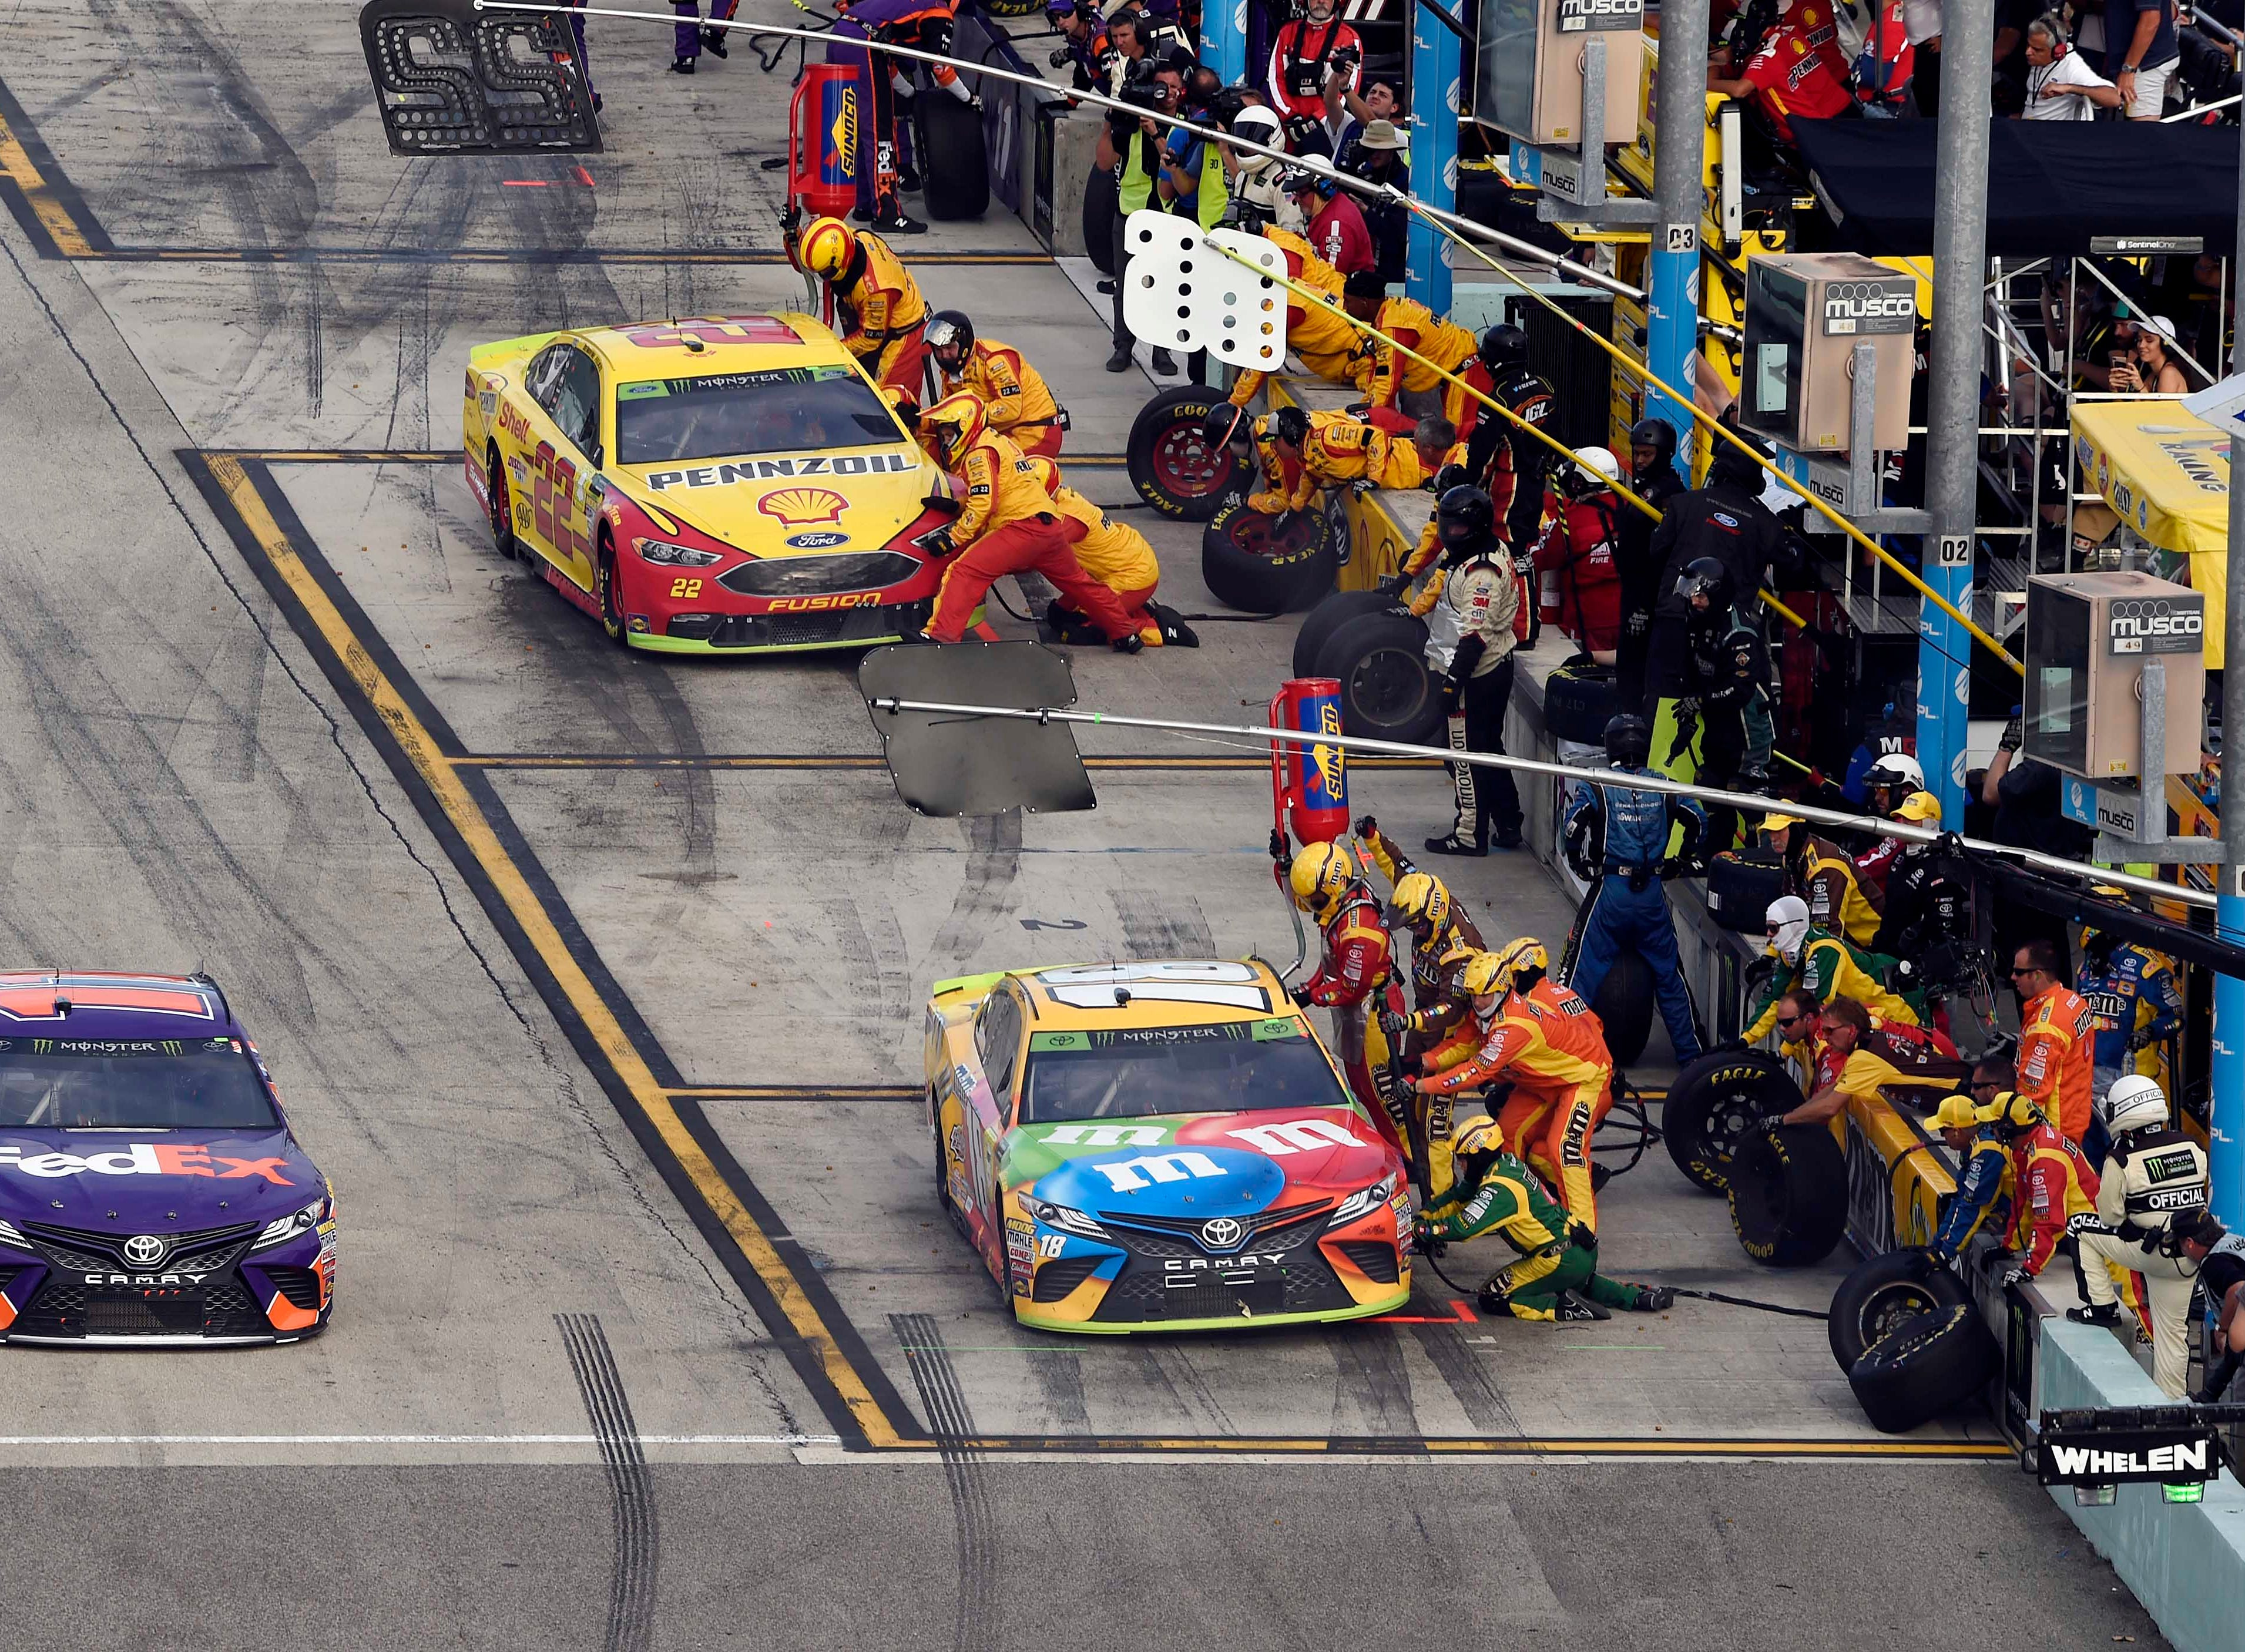 As the pit crews of Kyle Busch (18) and Joey Logano (22) work on their cars, Denny Hamlin speeds past during the the Ford EcoBoost 400 at Homestead-Miami Speedway.